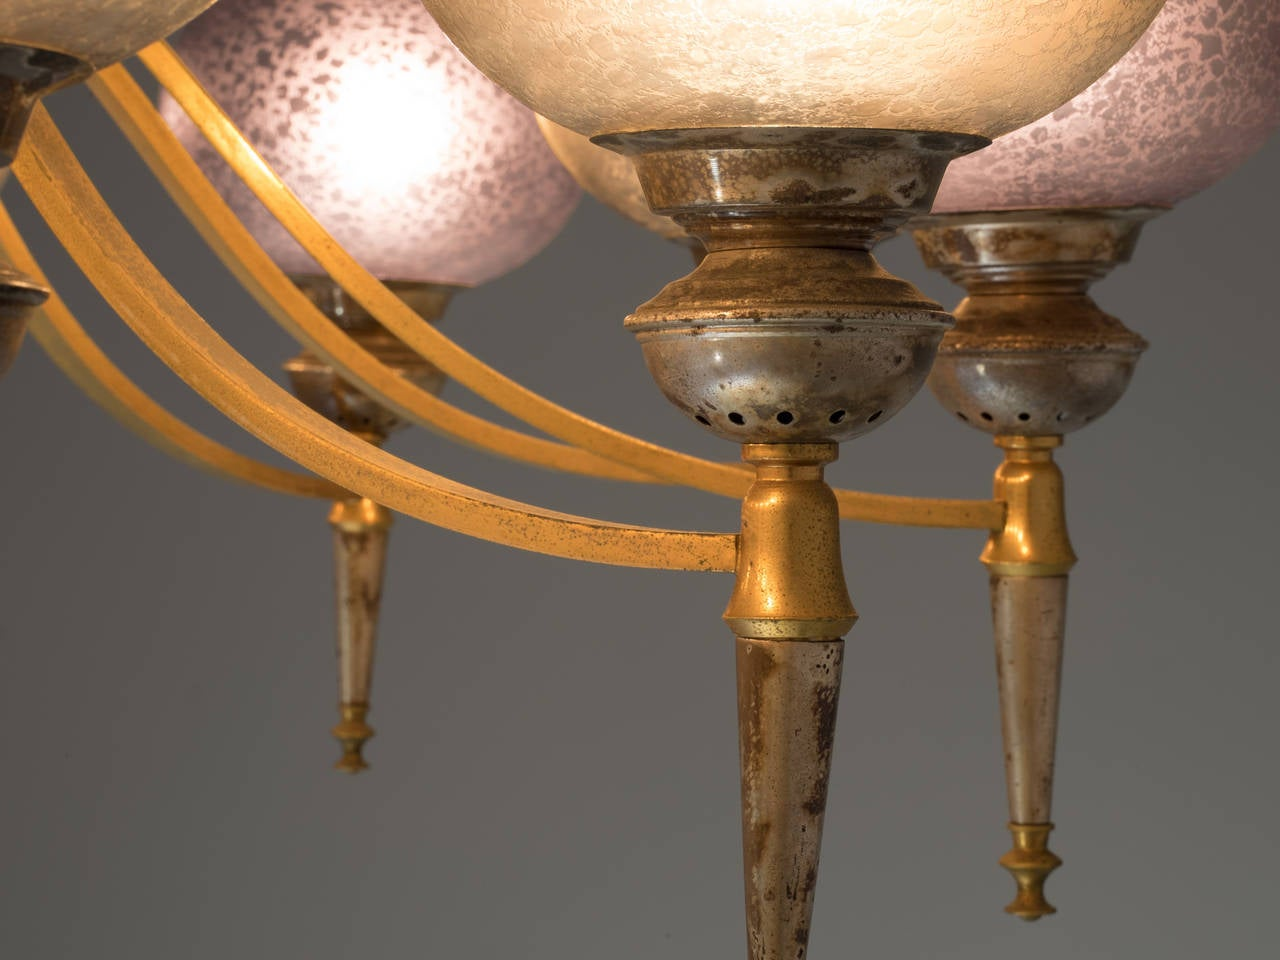 Stunning Chandelier With Decorative Shades And Details For